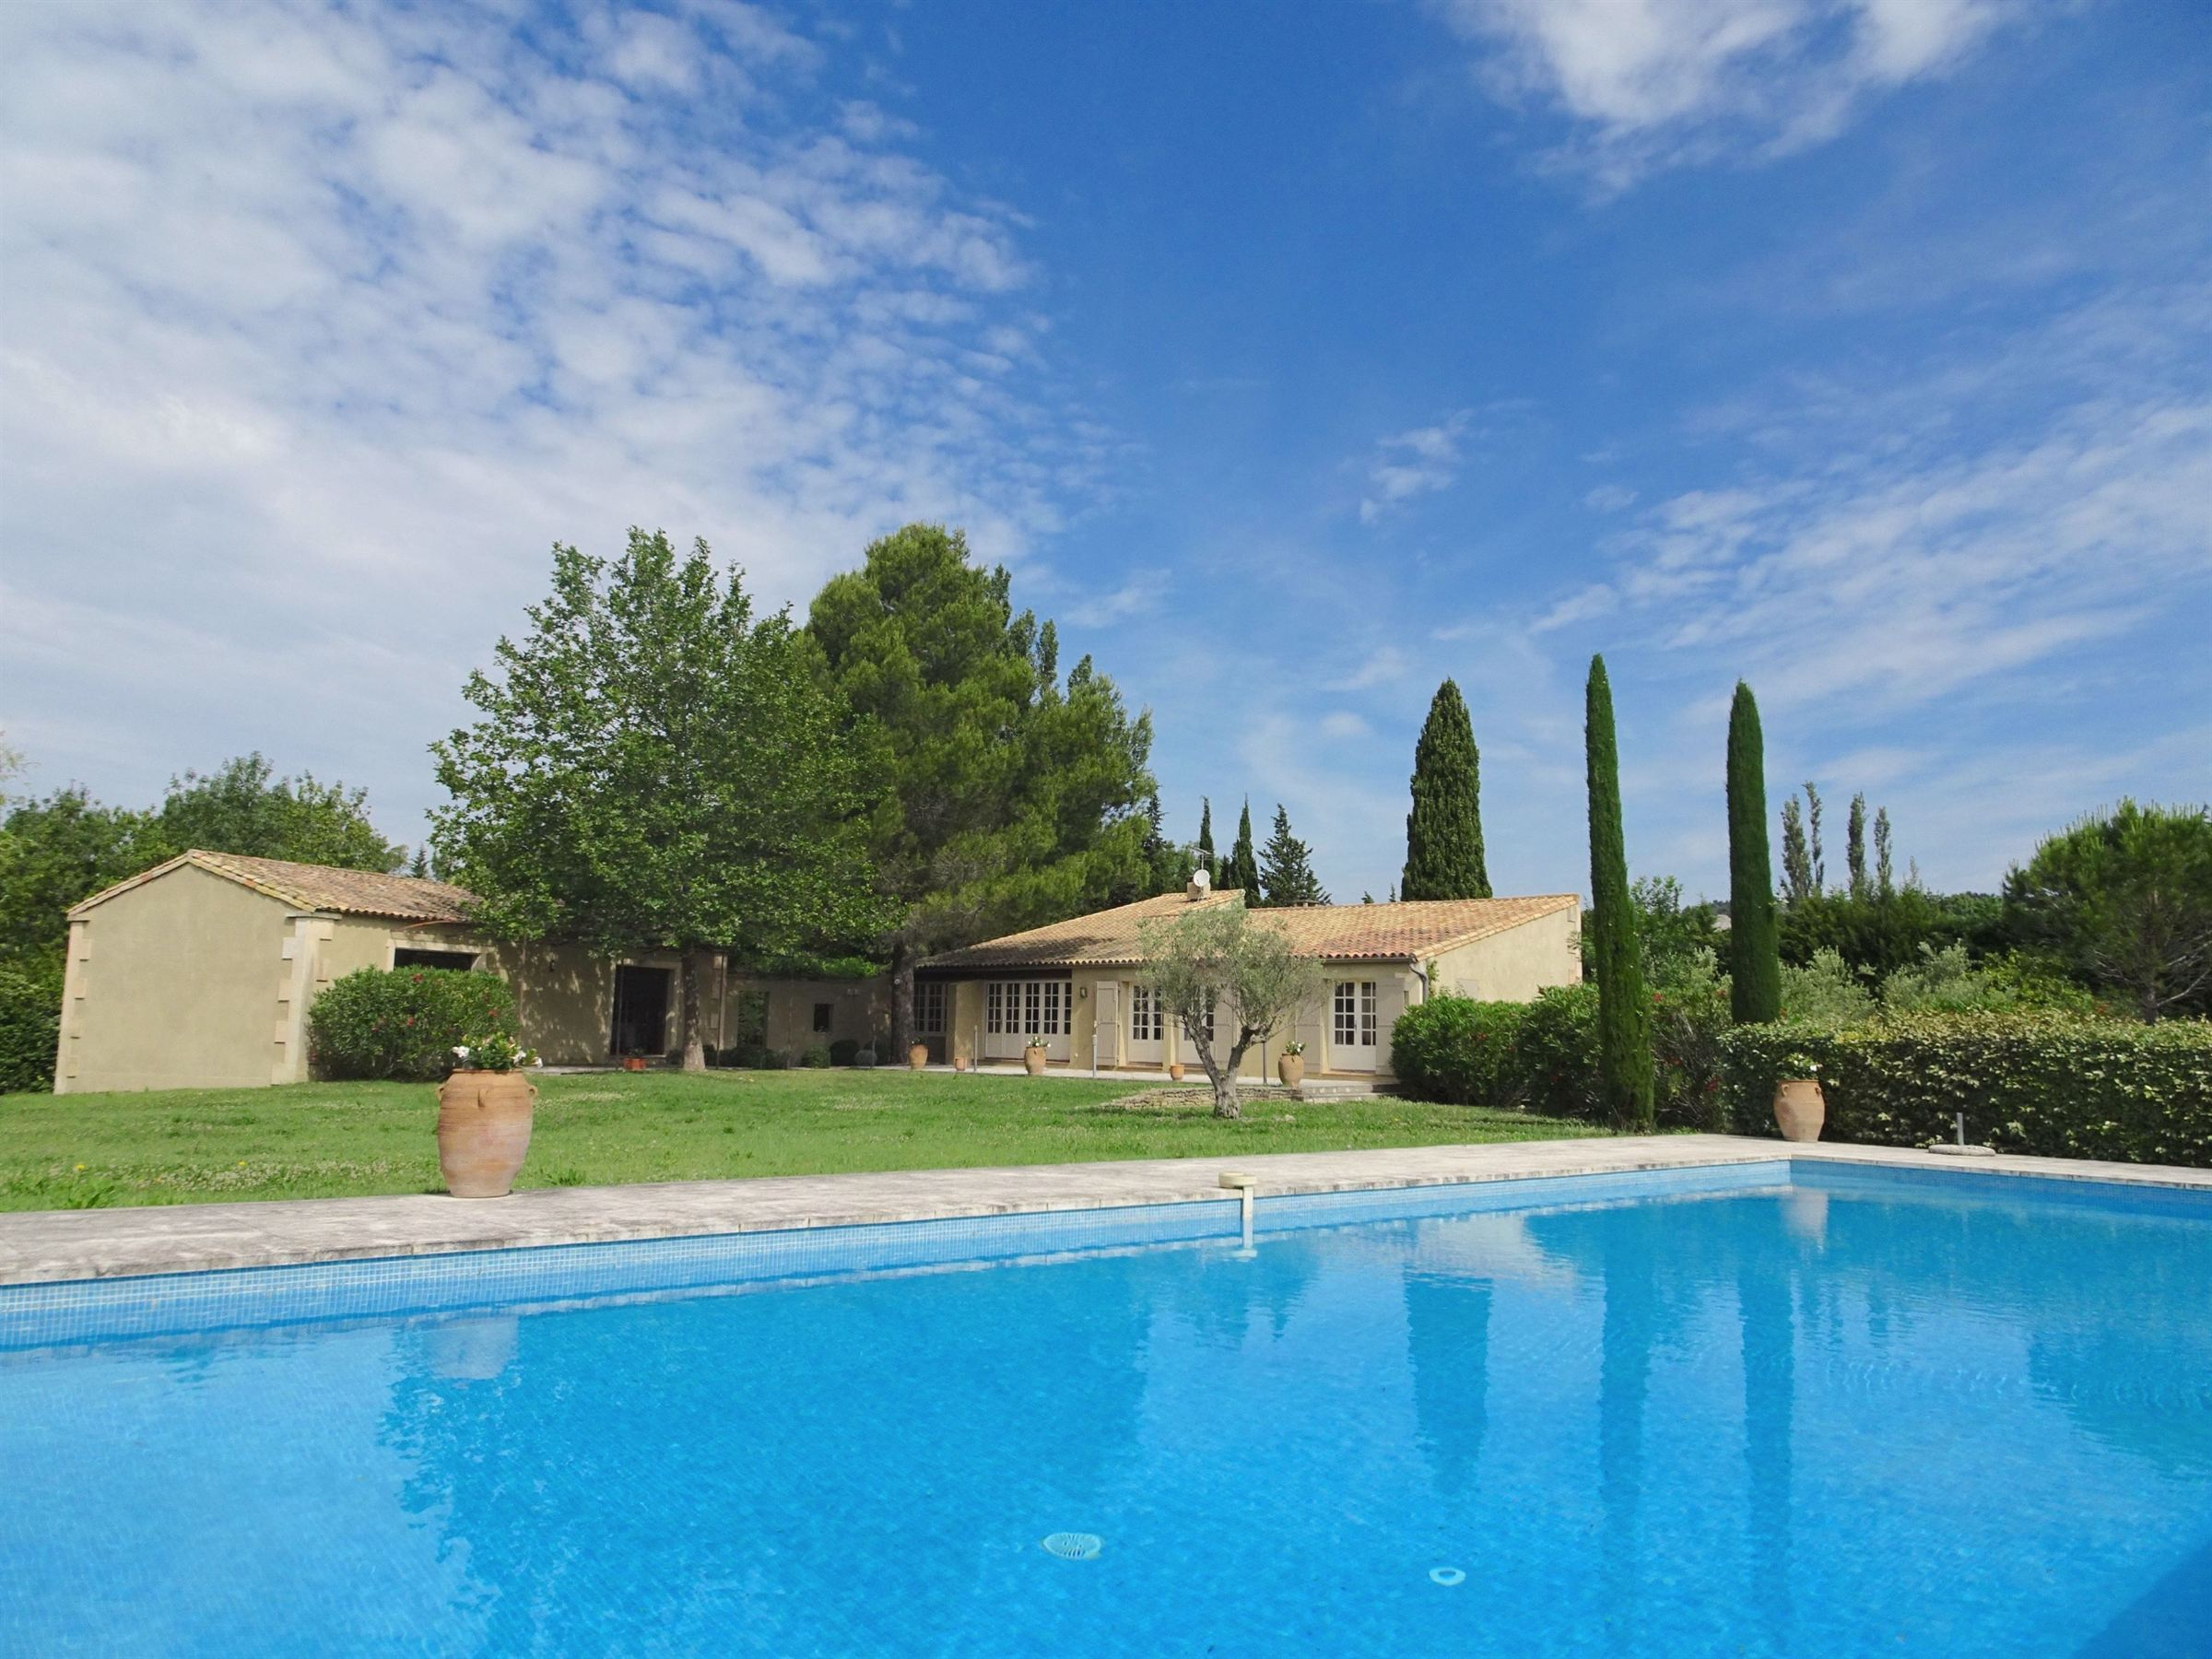 sales property at Maussane , Property located a few minutes walk to the village center